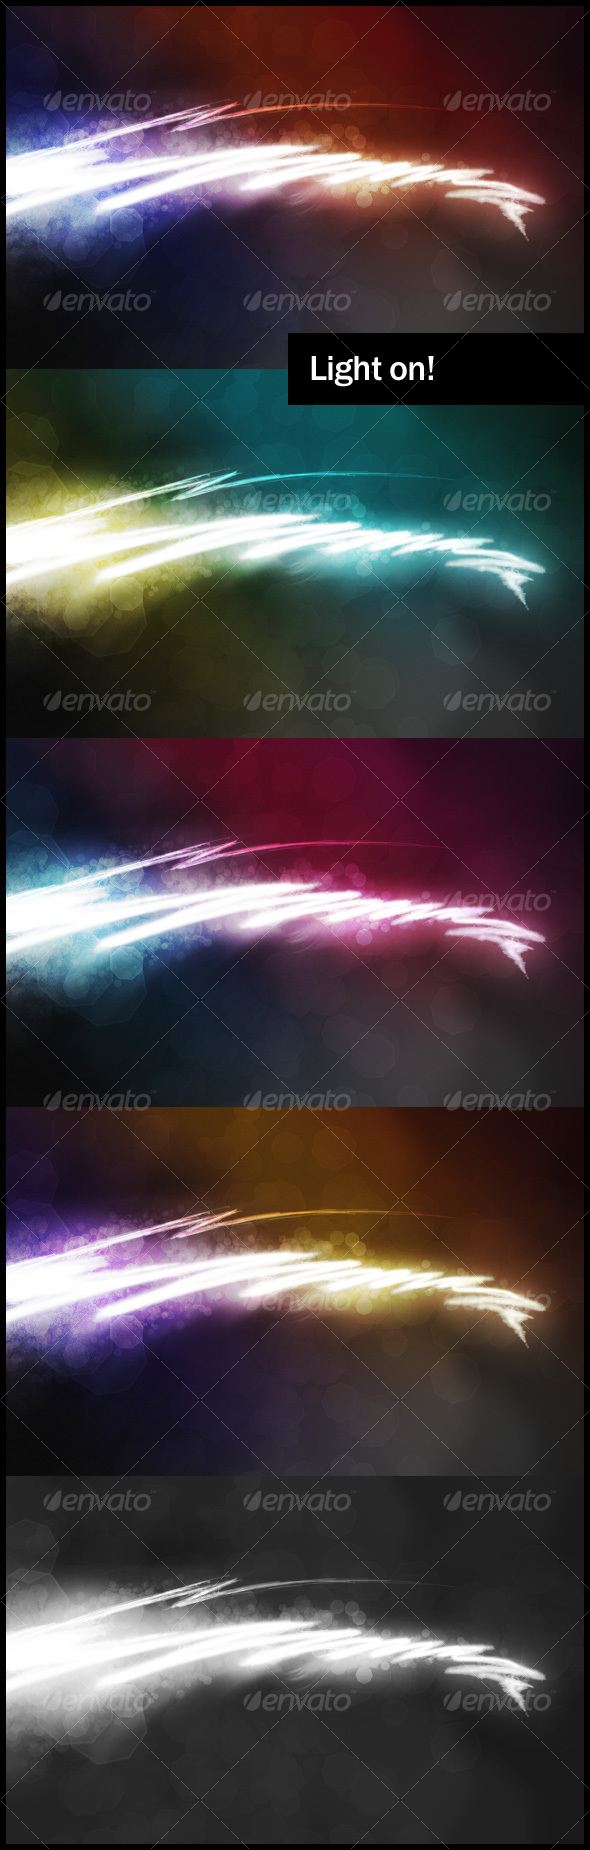 Light on! Backgrounds pack - Abstract Backgrounds